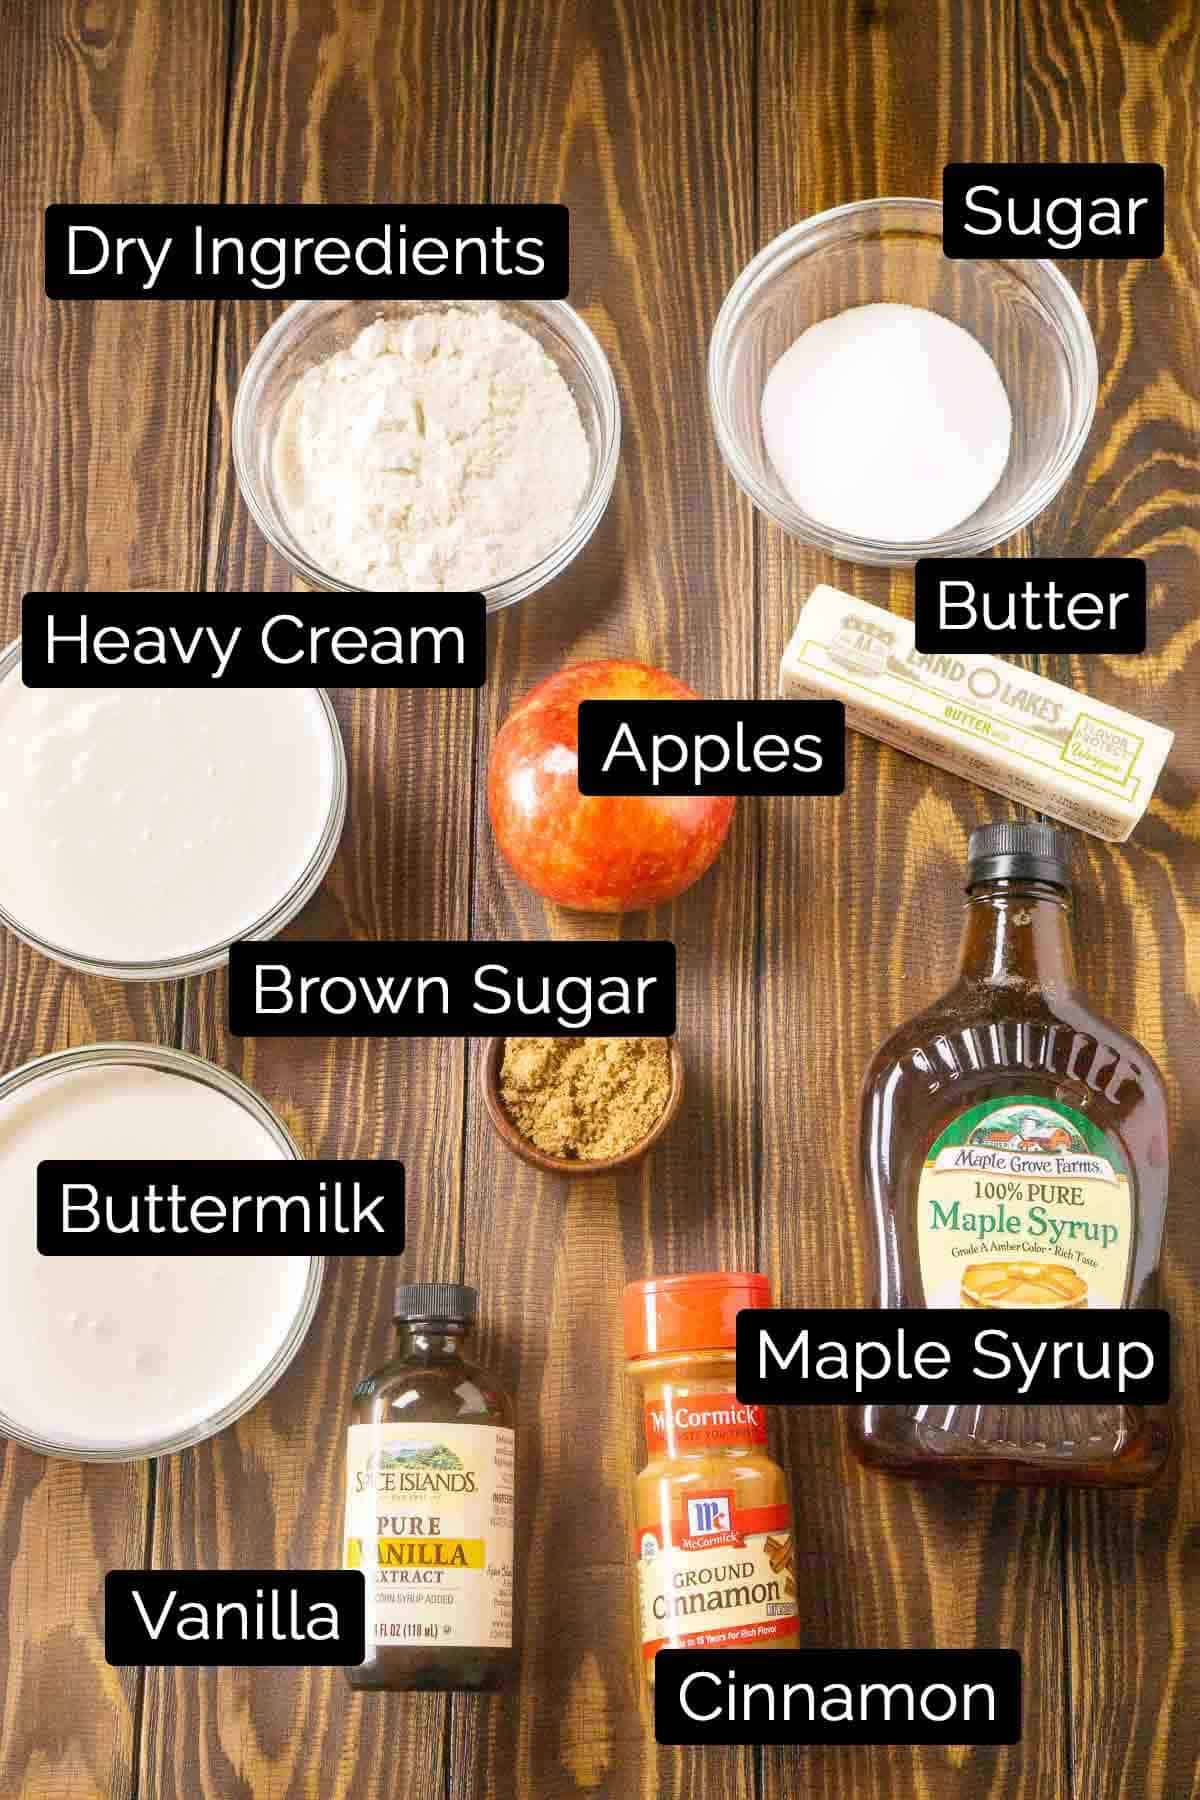 The ingredients with labels on a wooden board.